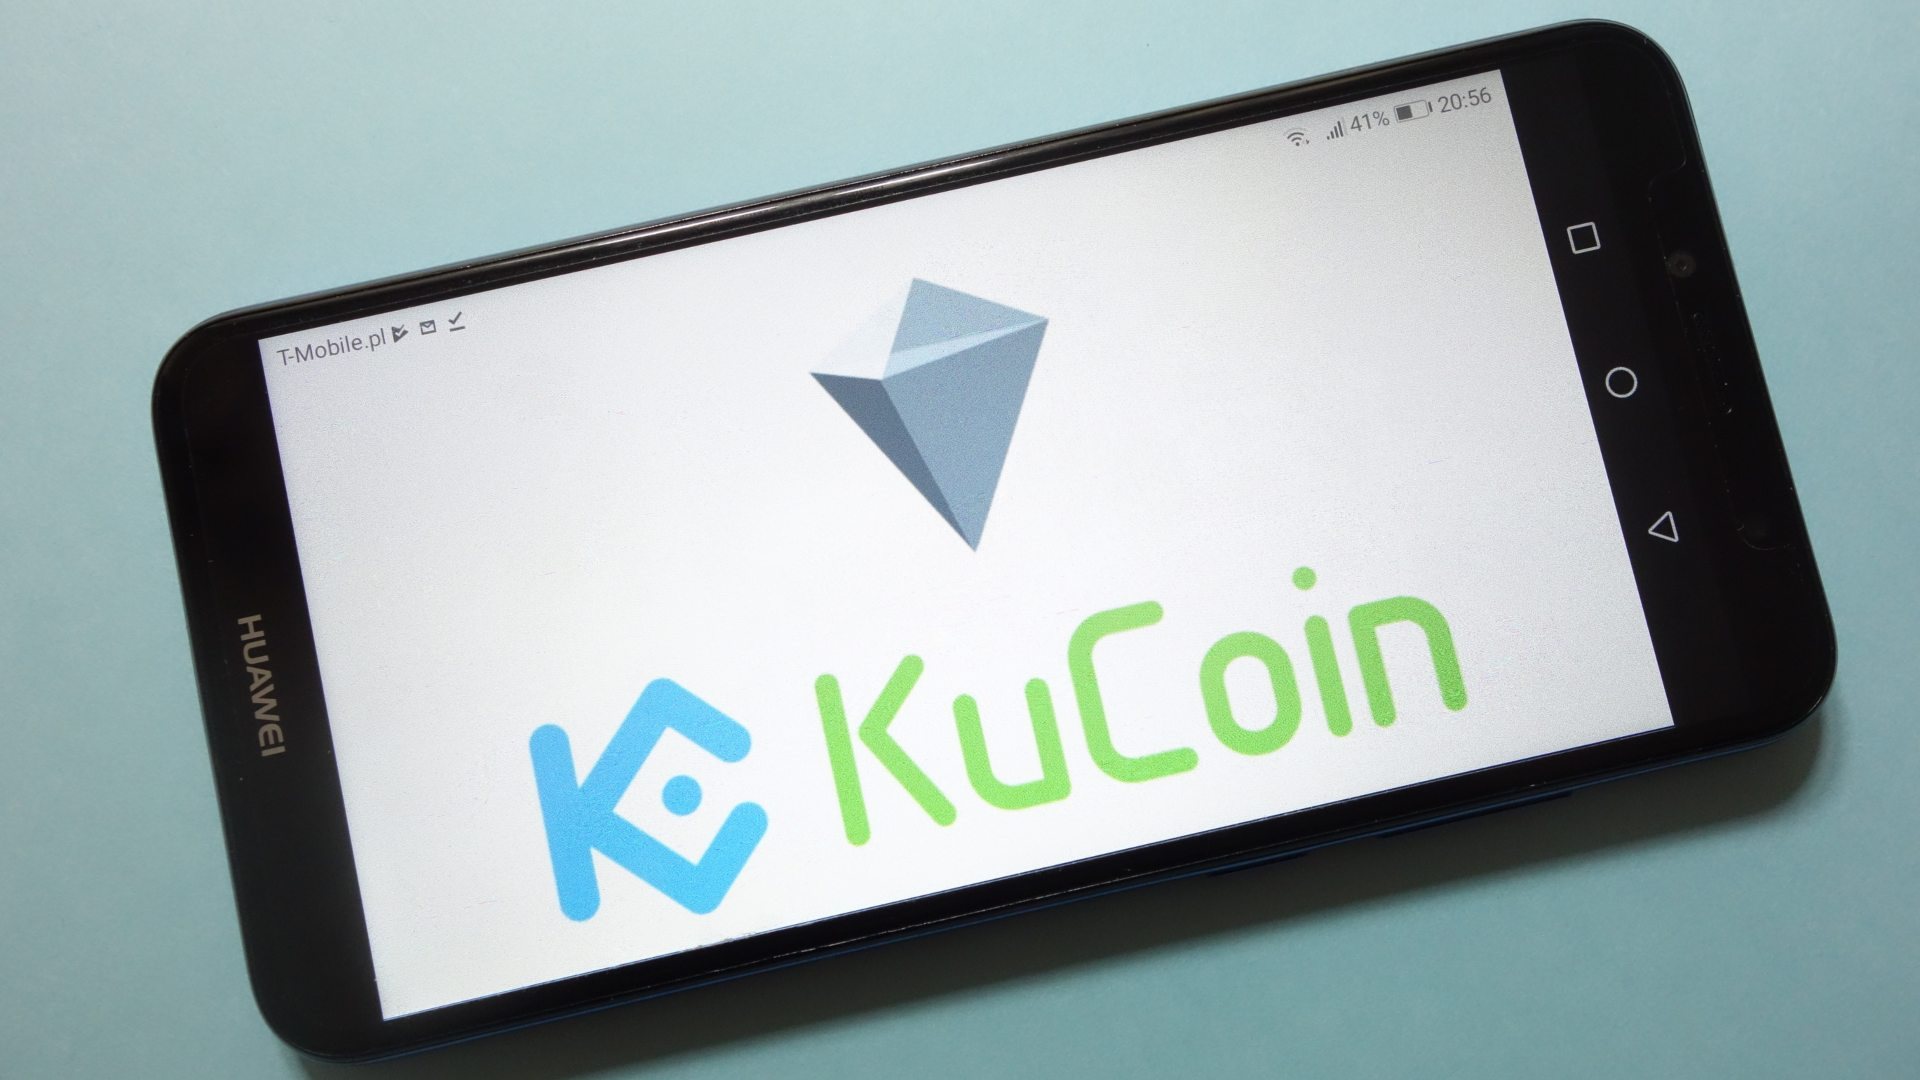 KuCoin: the app update adds support for new countries